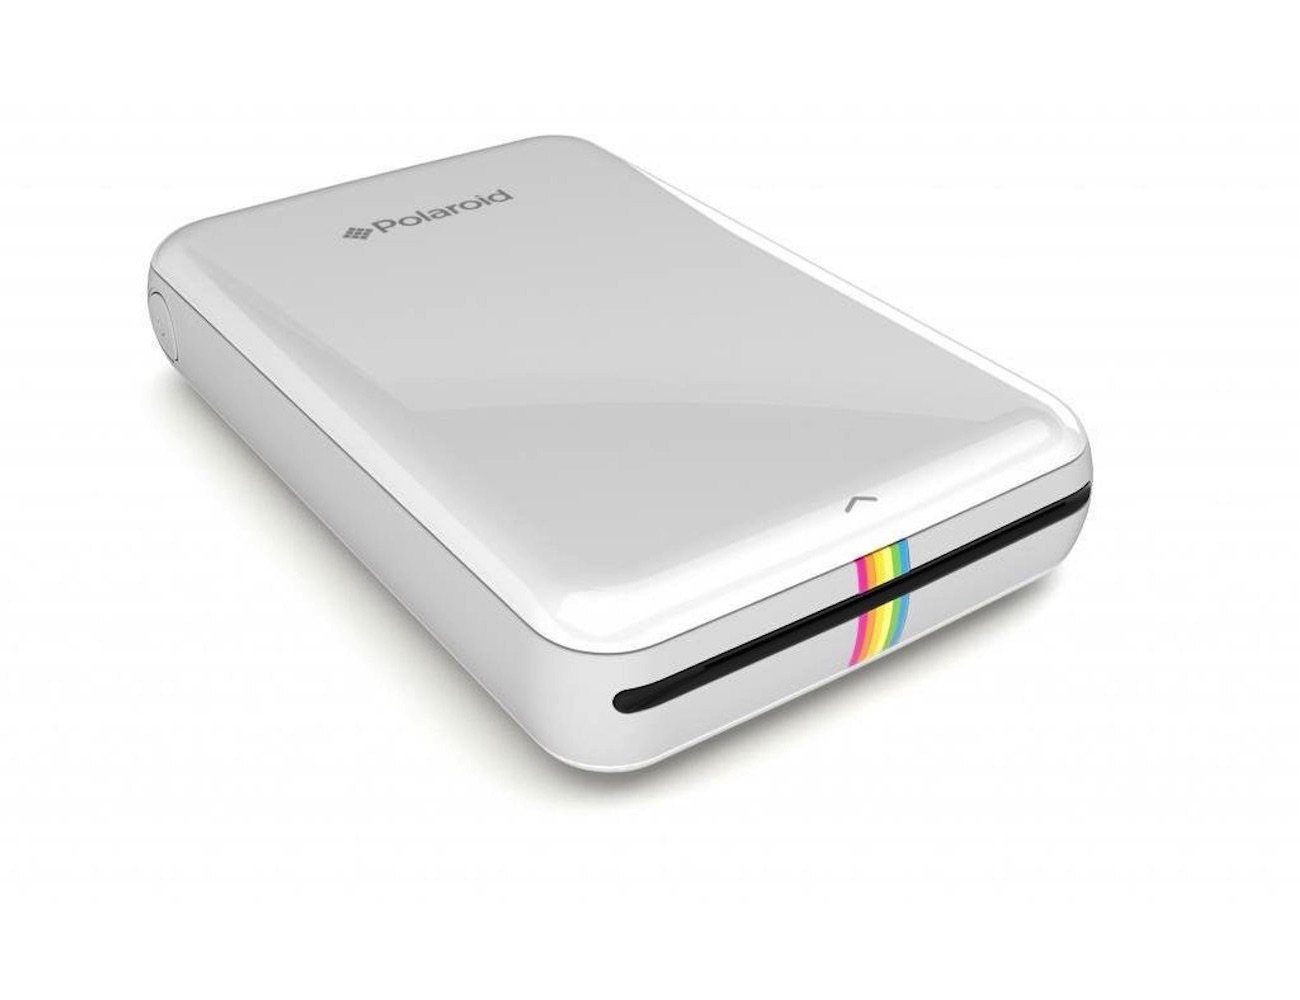 polaroid-zip-mobile-printer-03